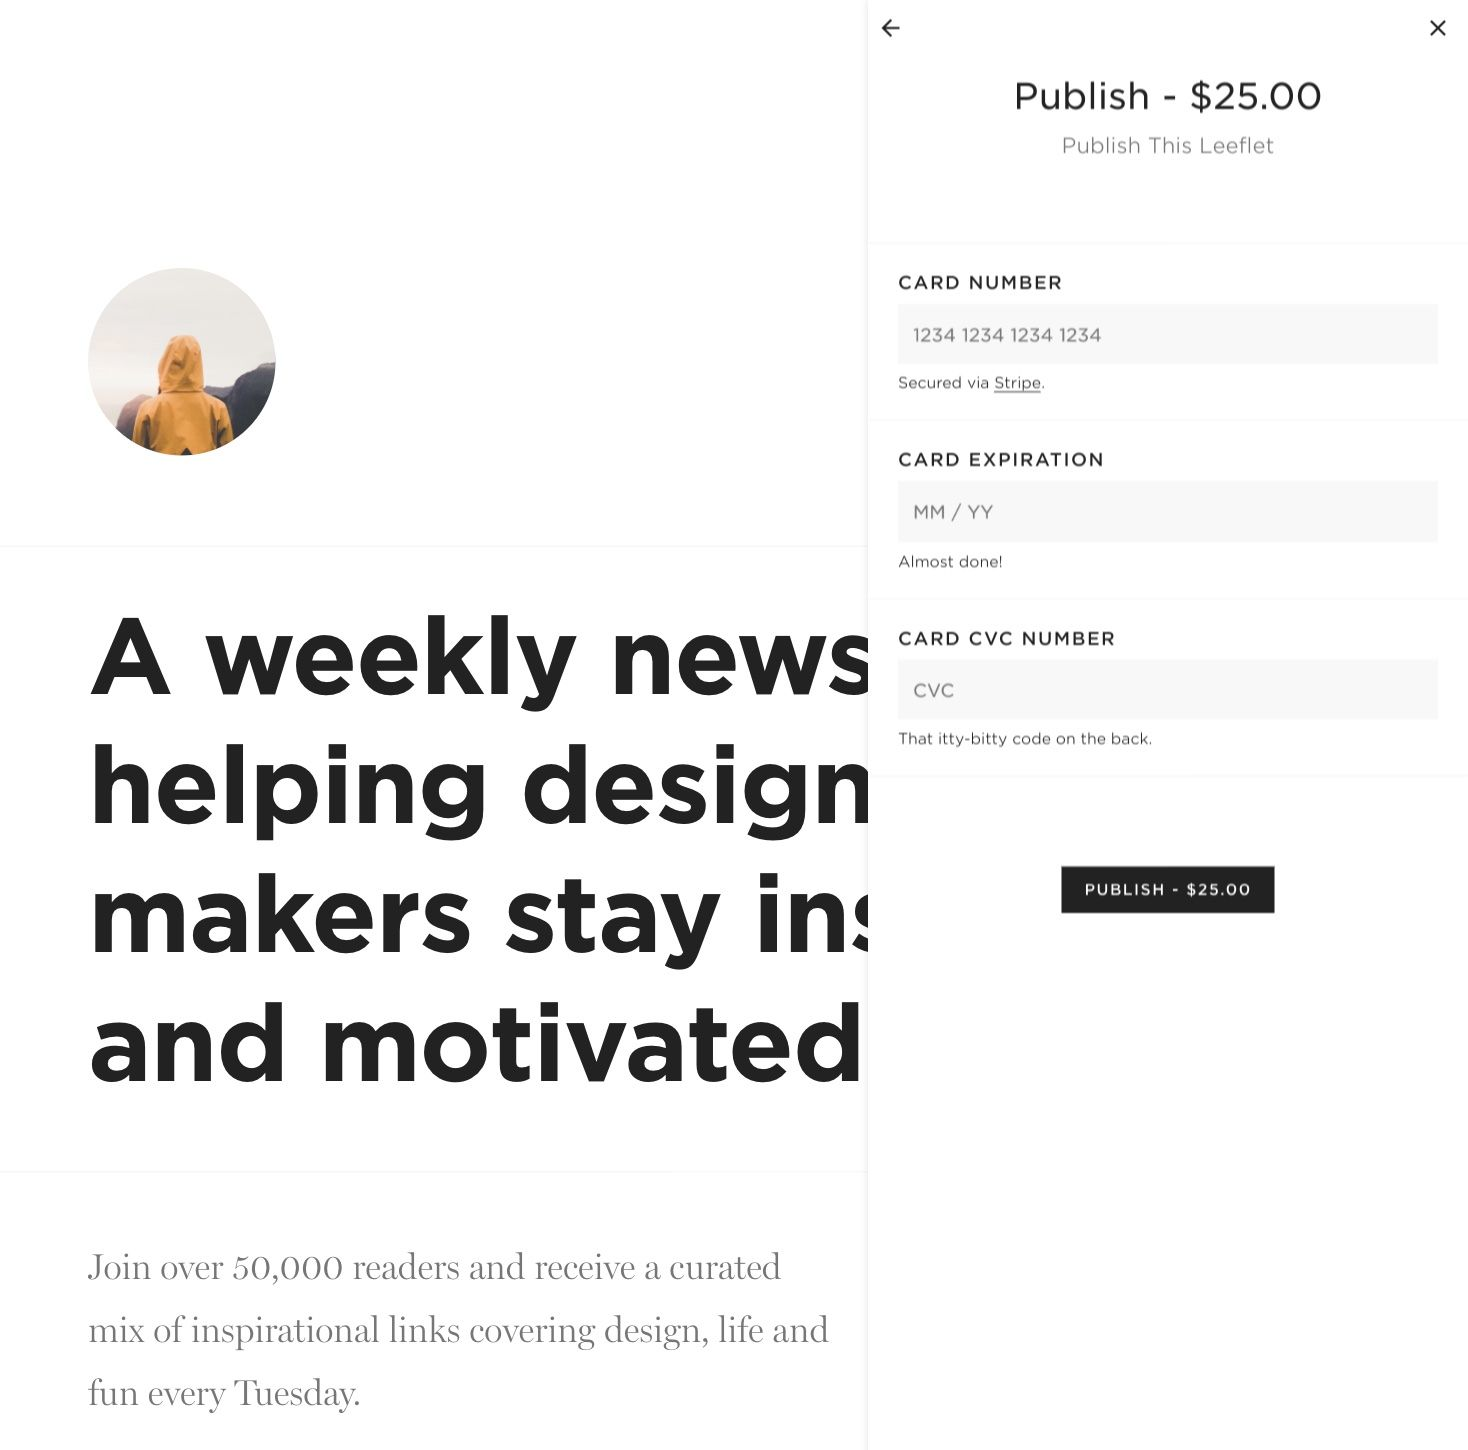 Pay to Publish